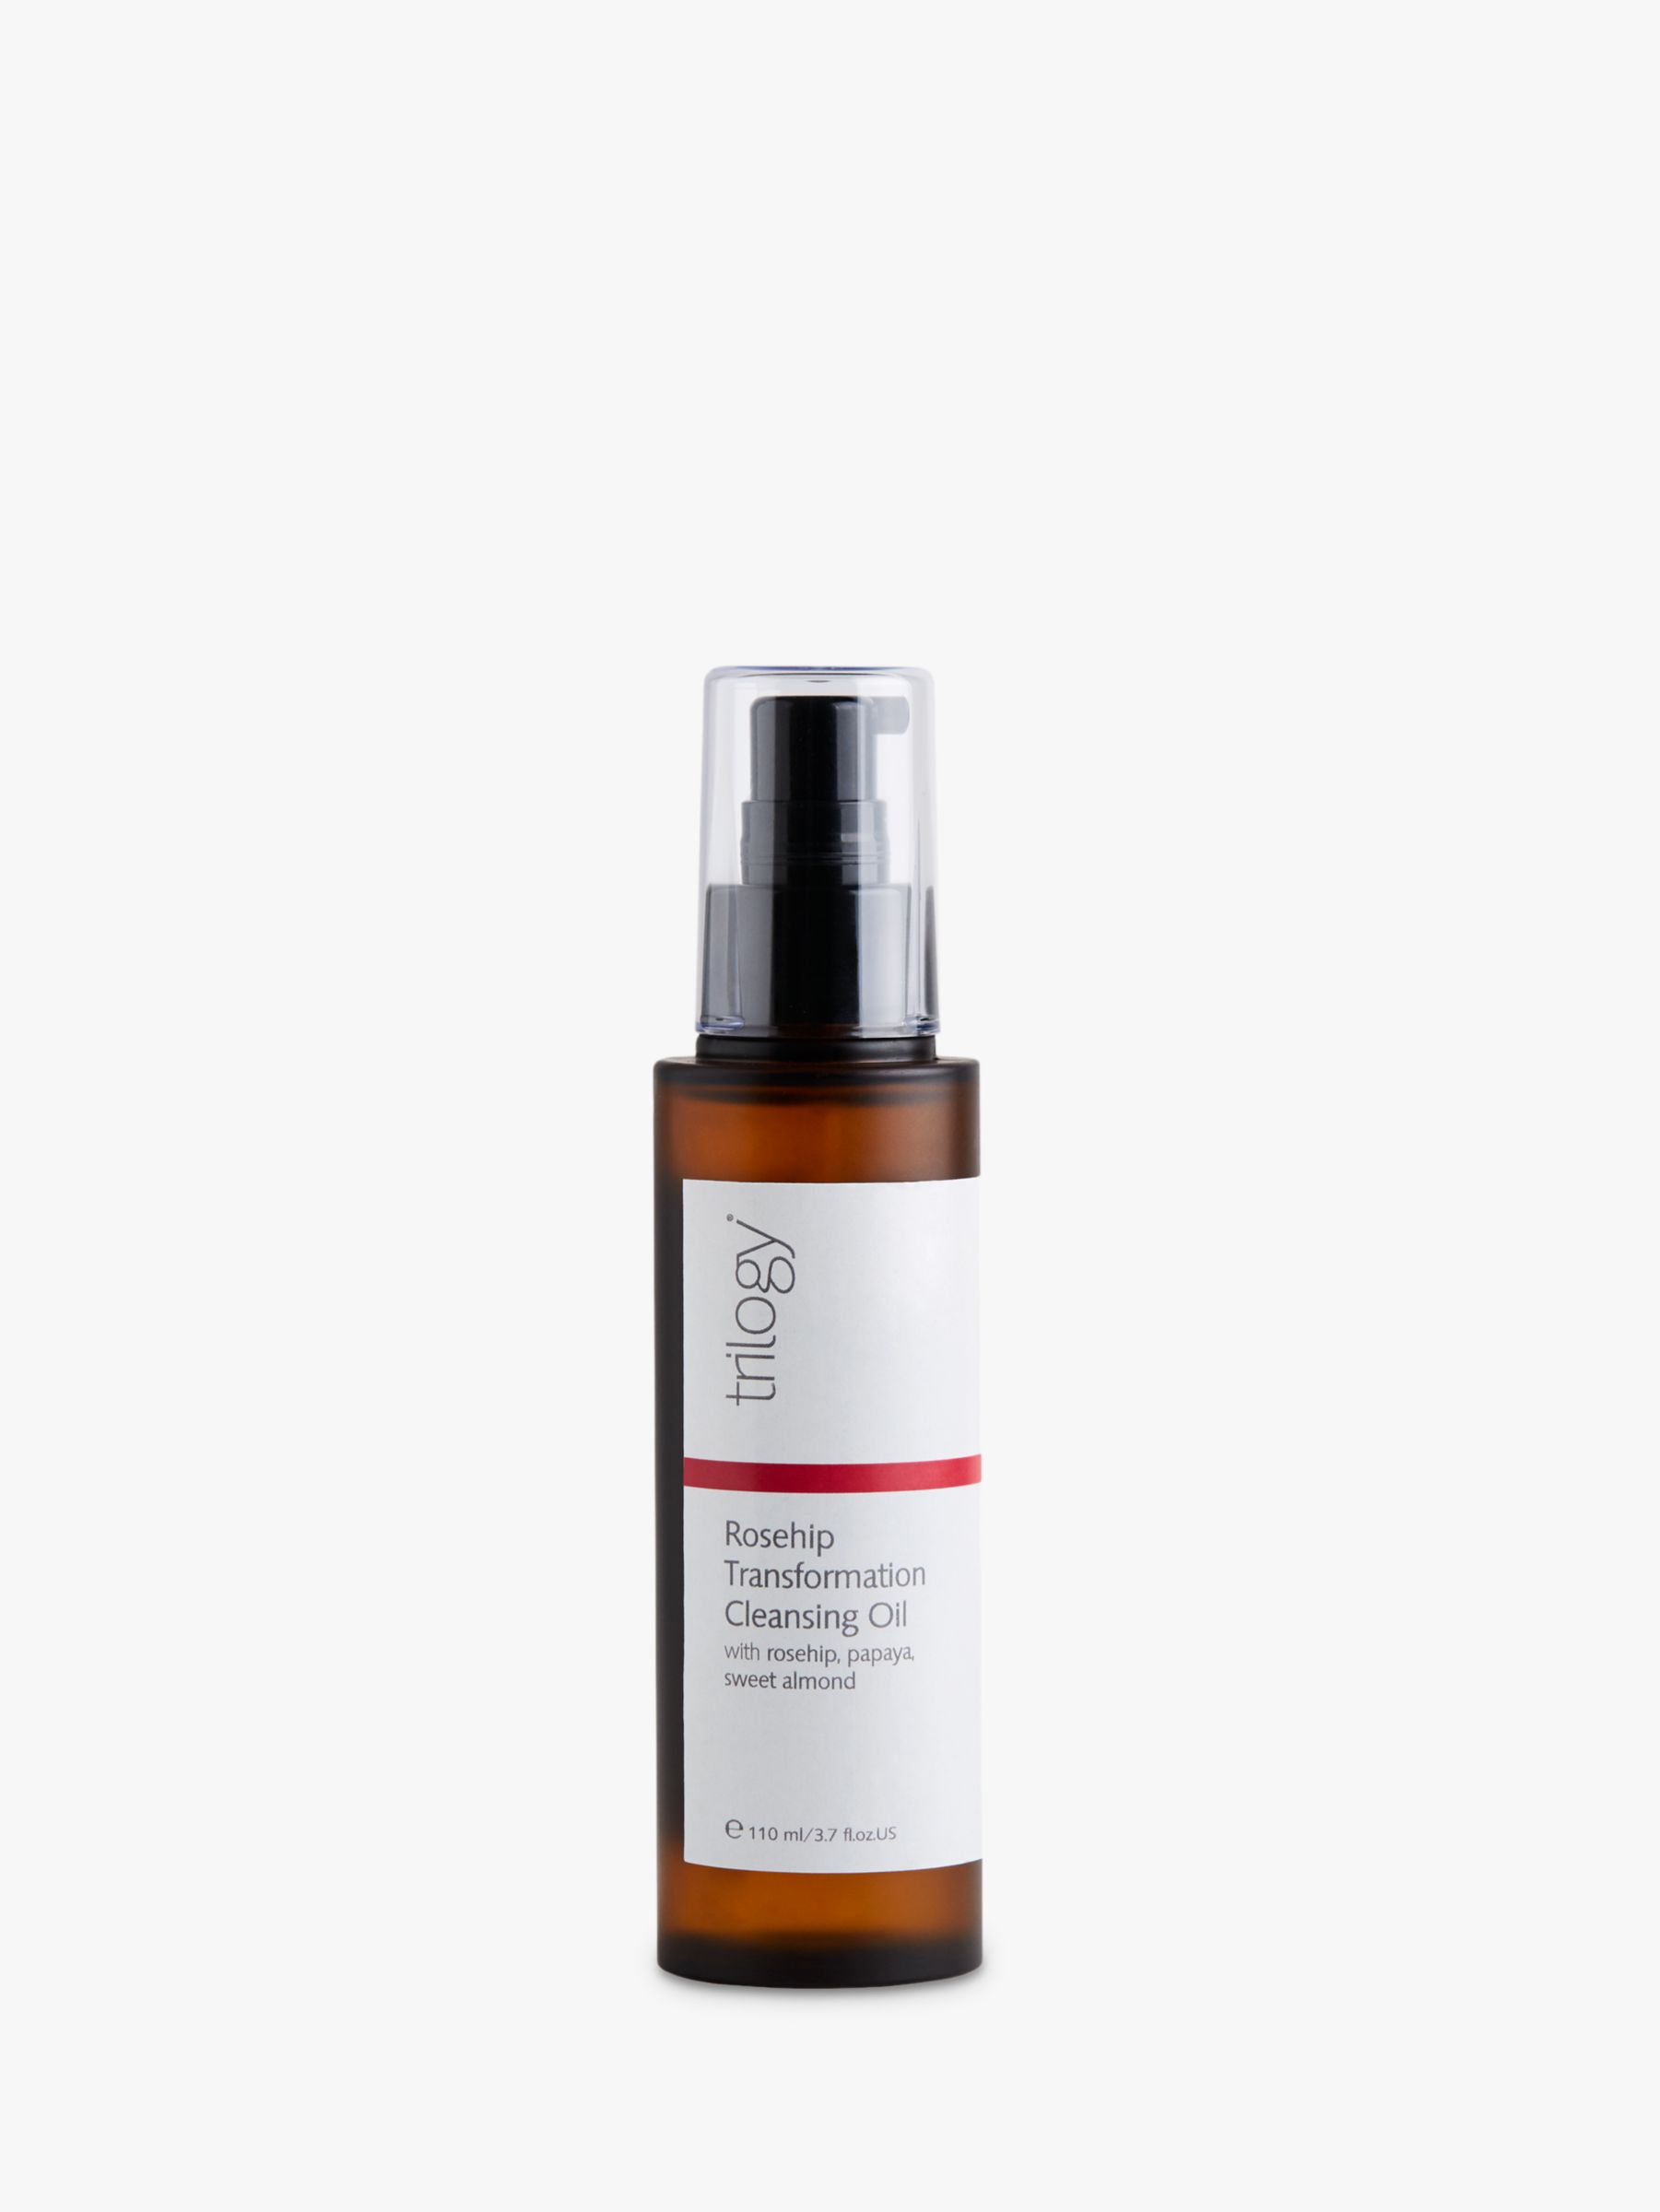 Trilogy Trilogy Rosehip Transformation Cleansing Oil, 110ml